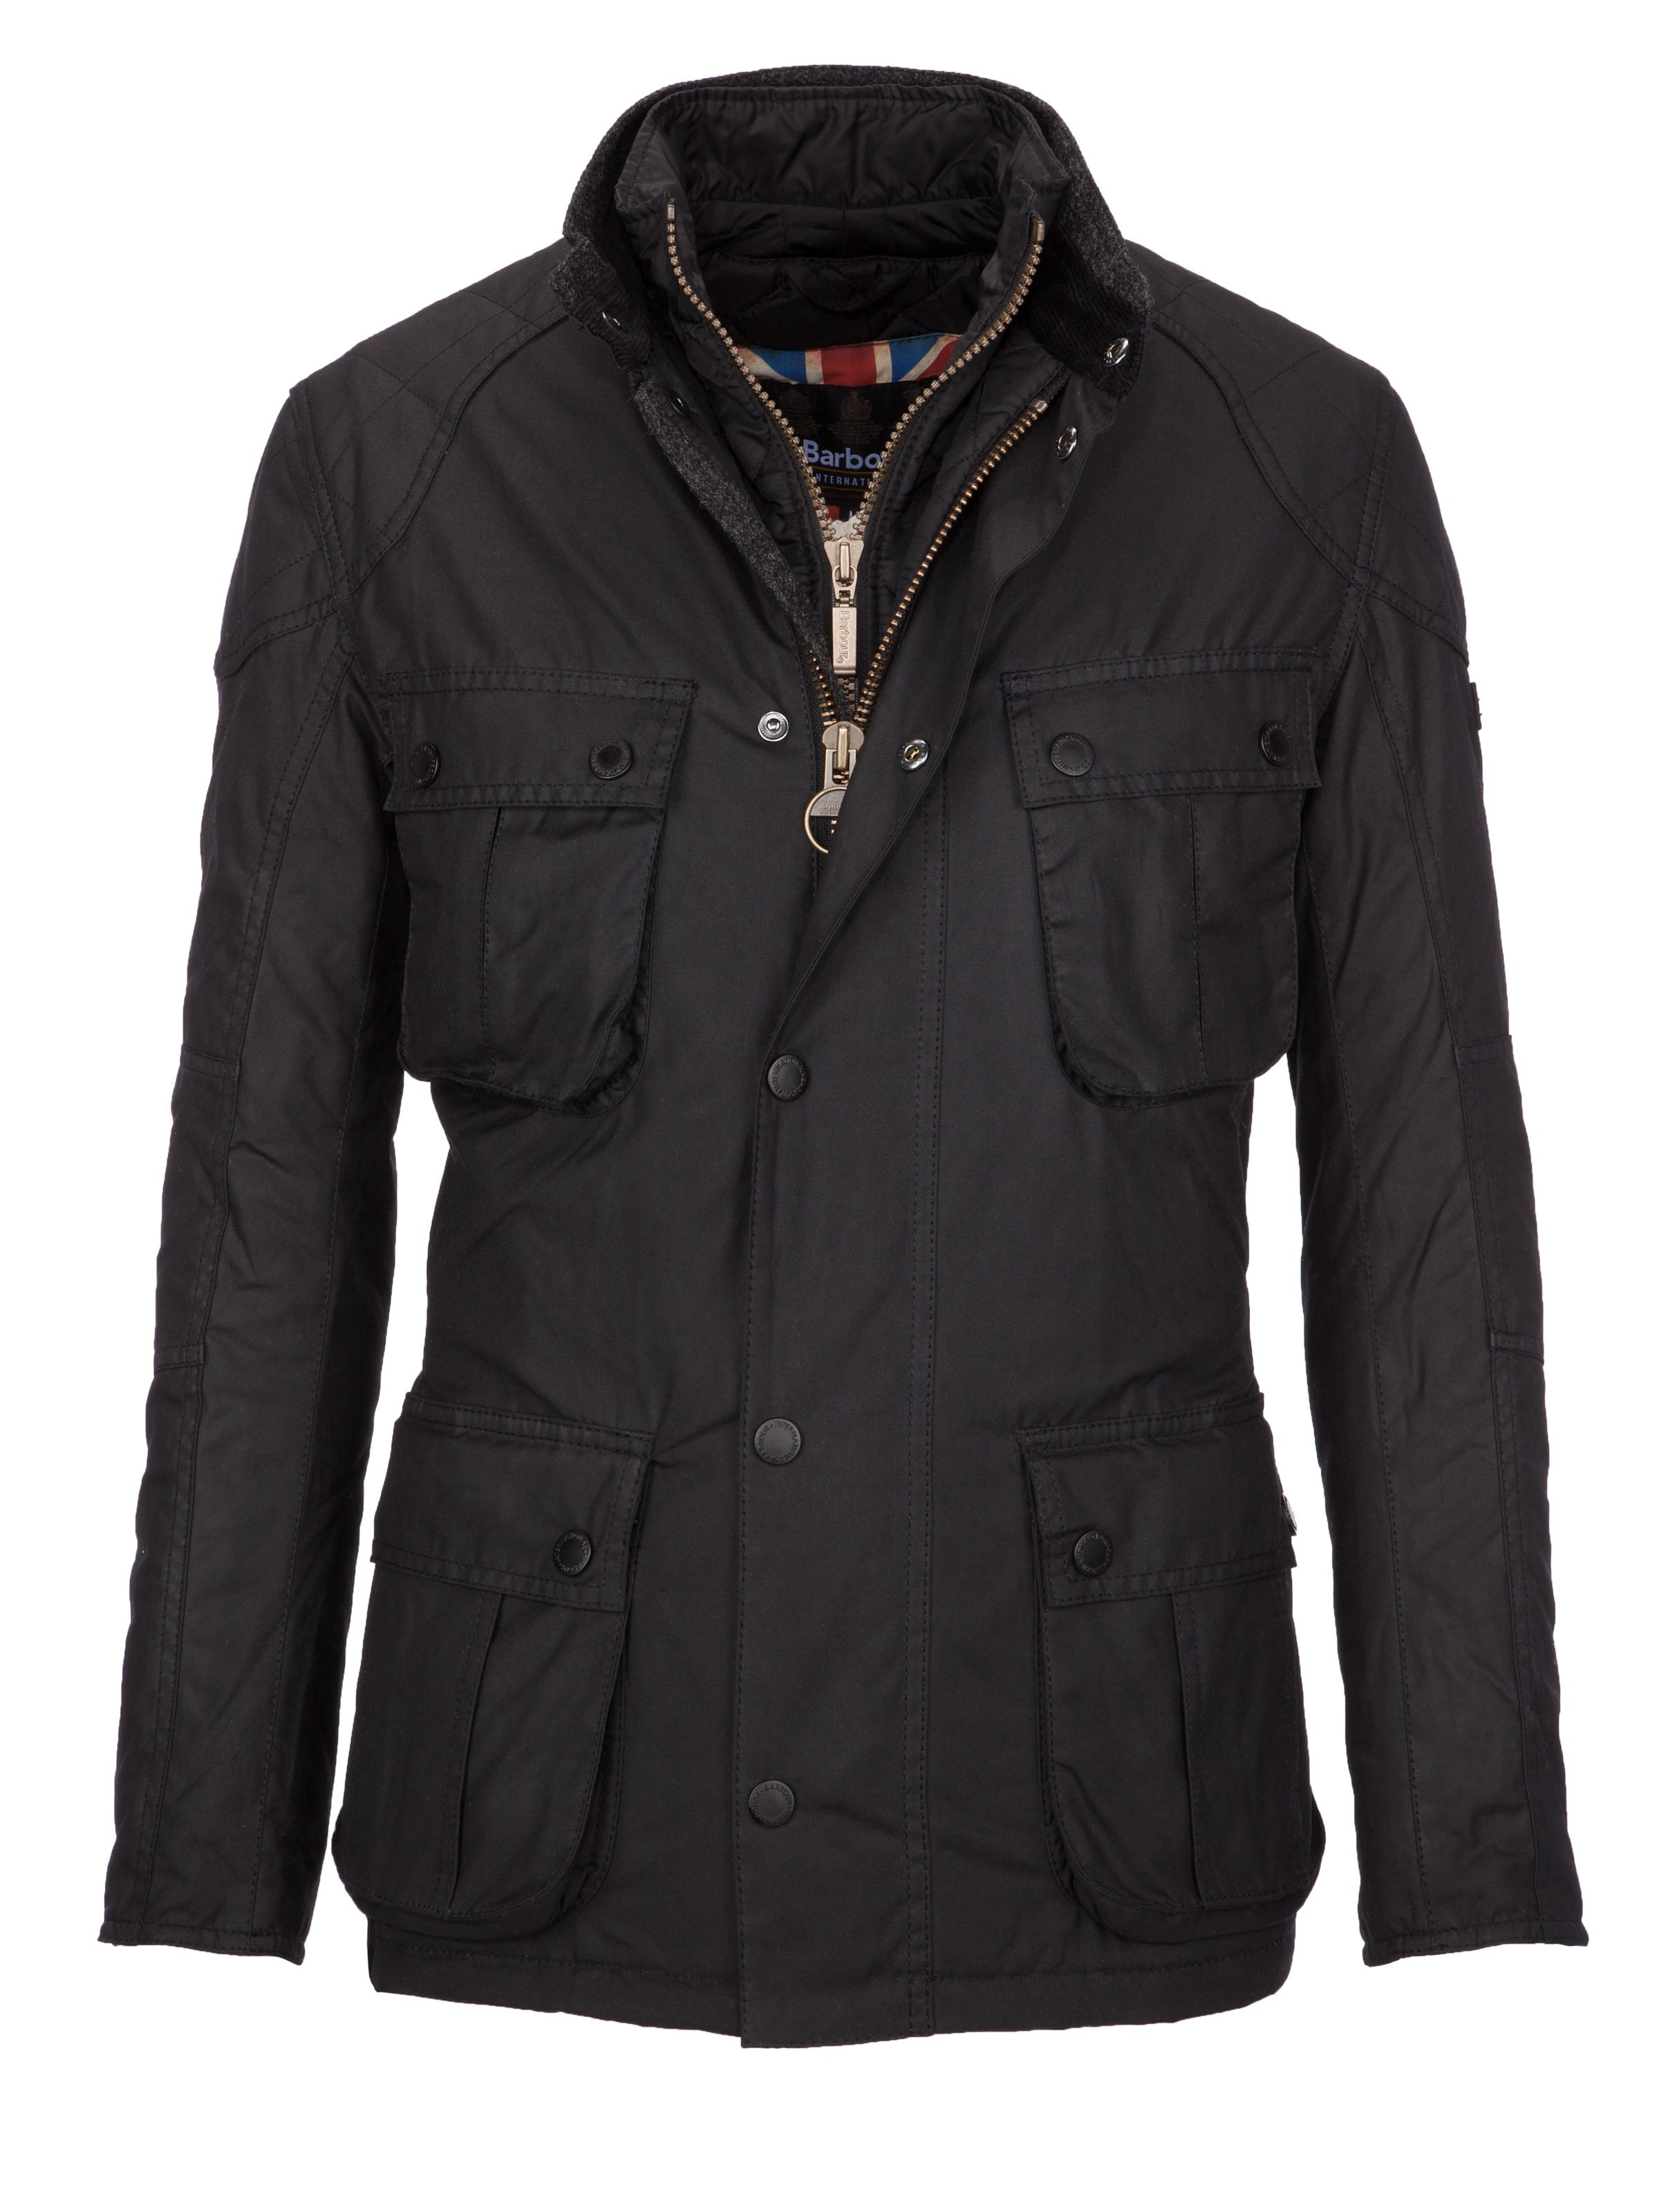 Barbour winterjacke sale